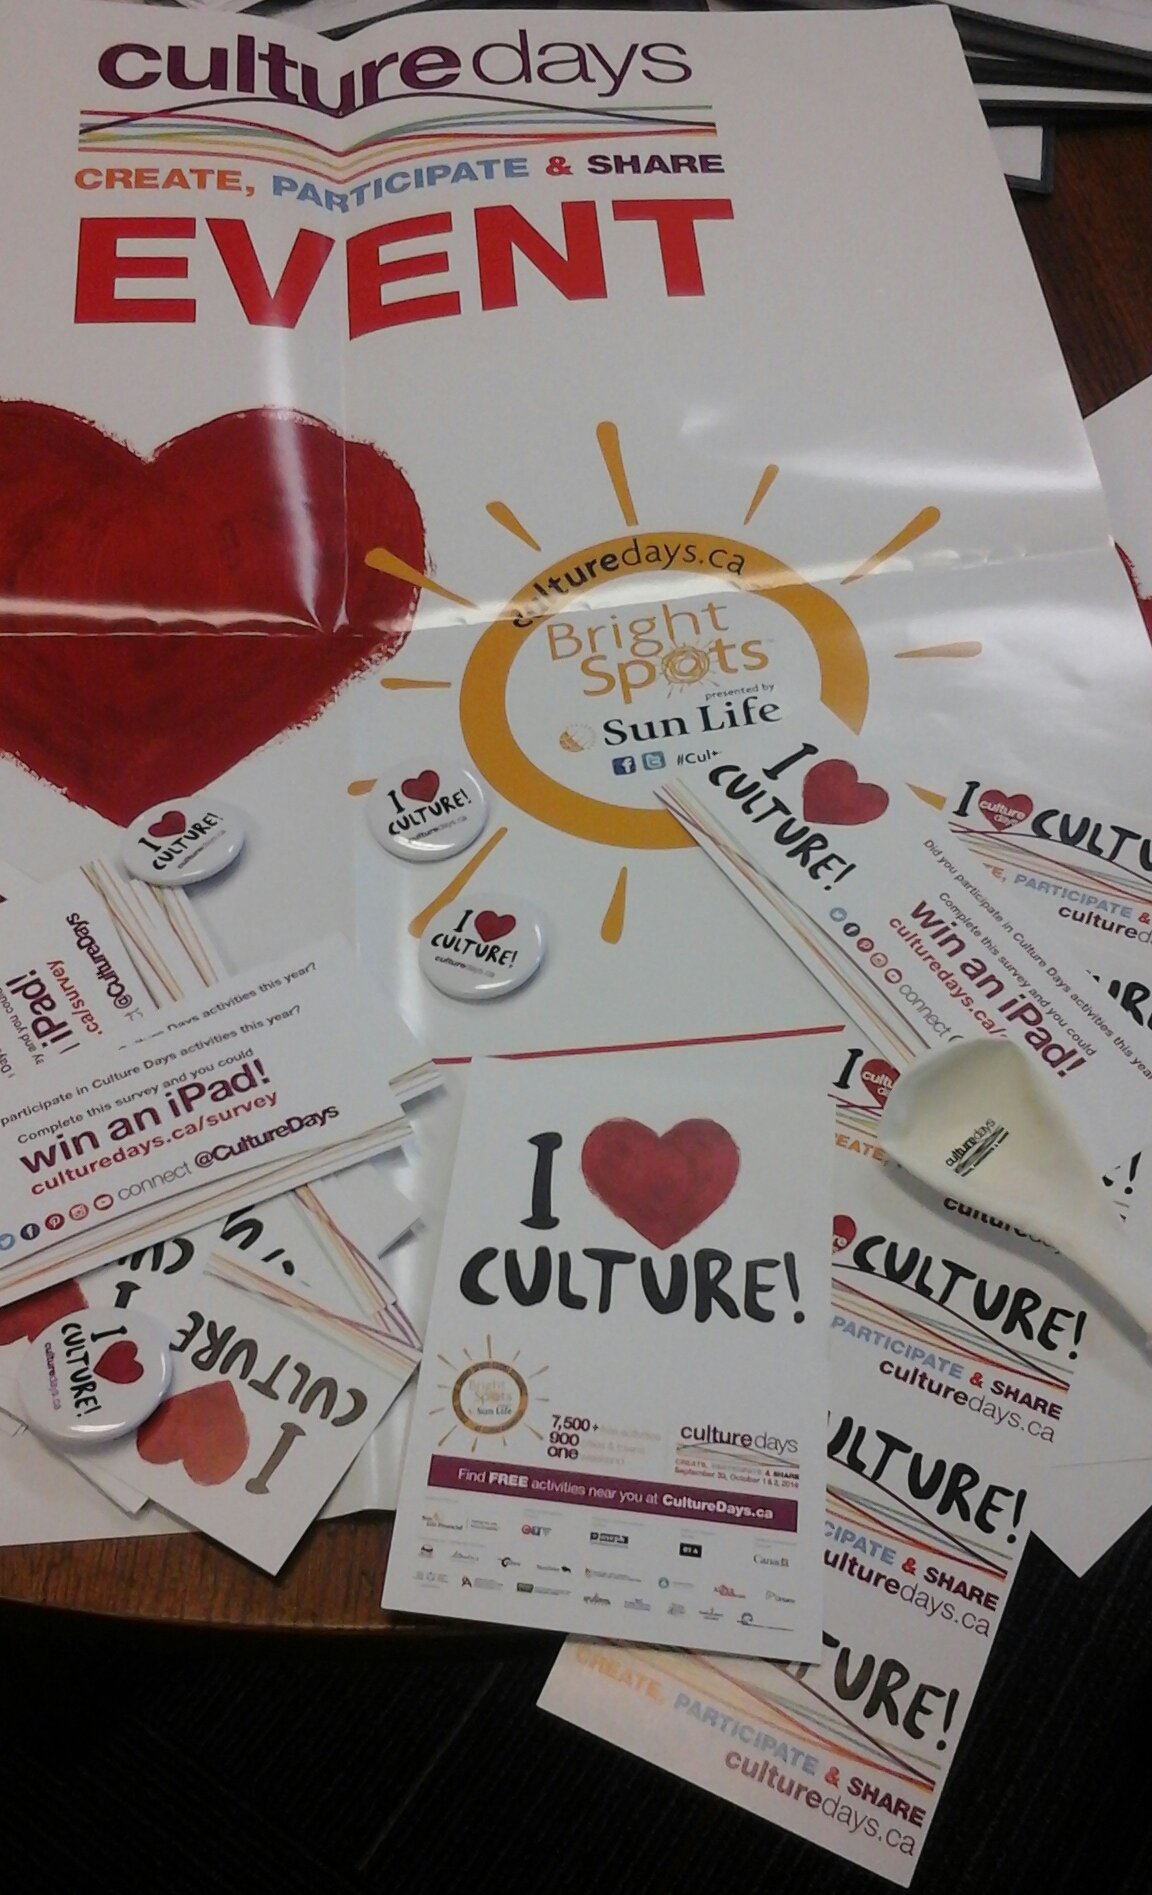 @ONCultureDays look what arrived. #CultureDays in #Whitby w/ @stationgallery @whitbylibrary @RawWhitby @TownofWhitby https://t.co/py2aB4P2Ty